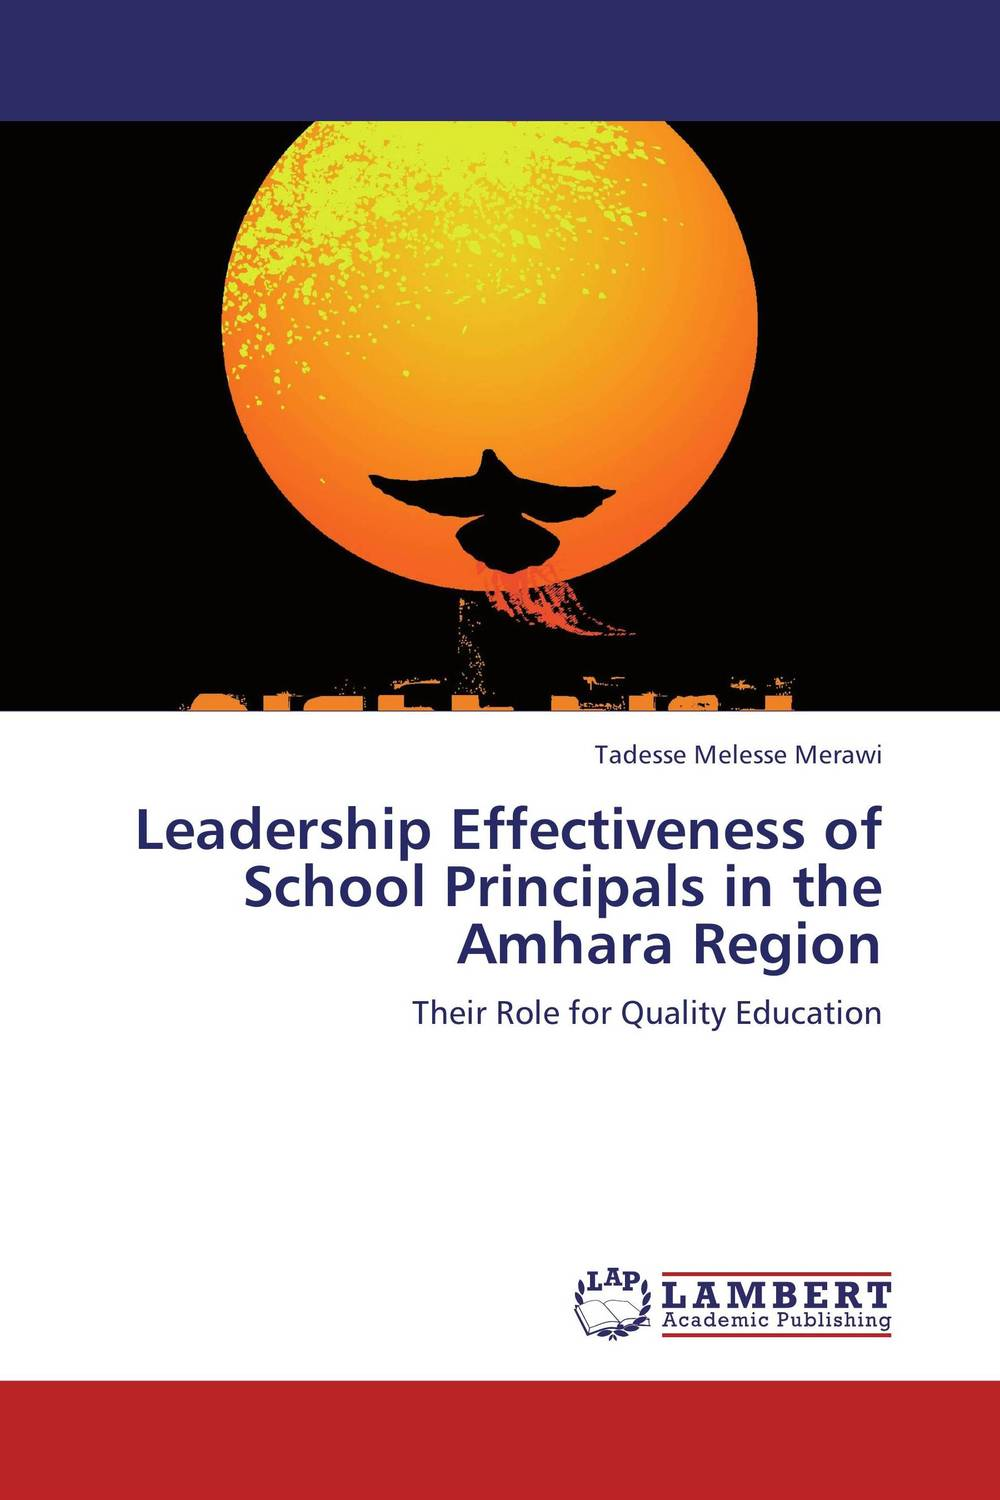 Leadership Effectiveness of School Principals in the Amhara Region